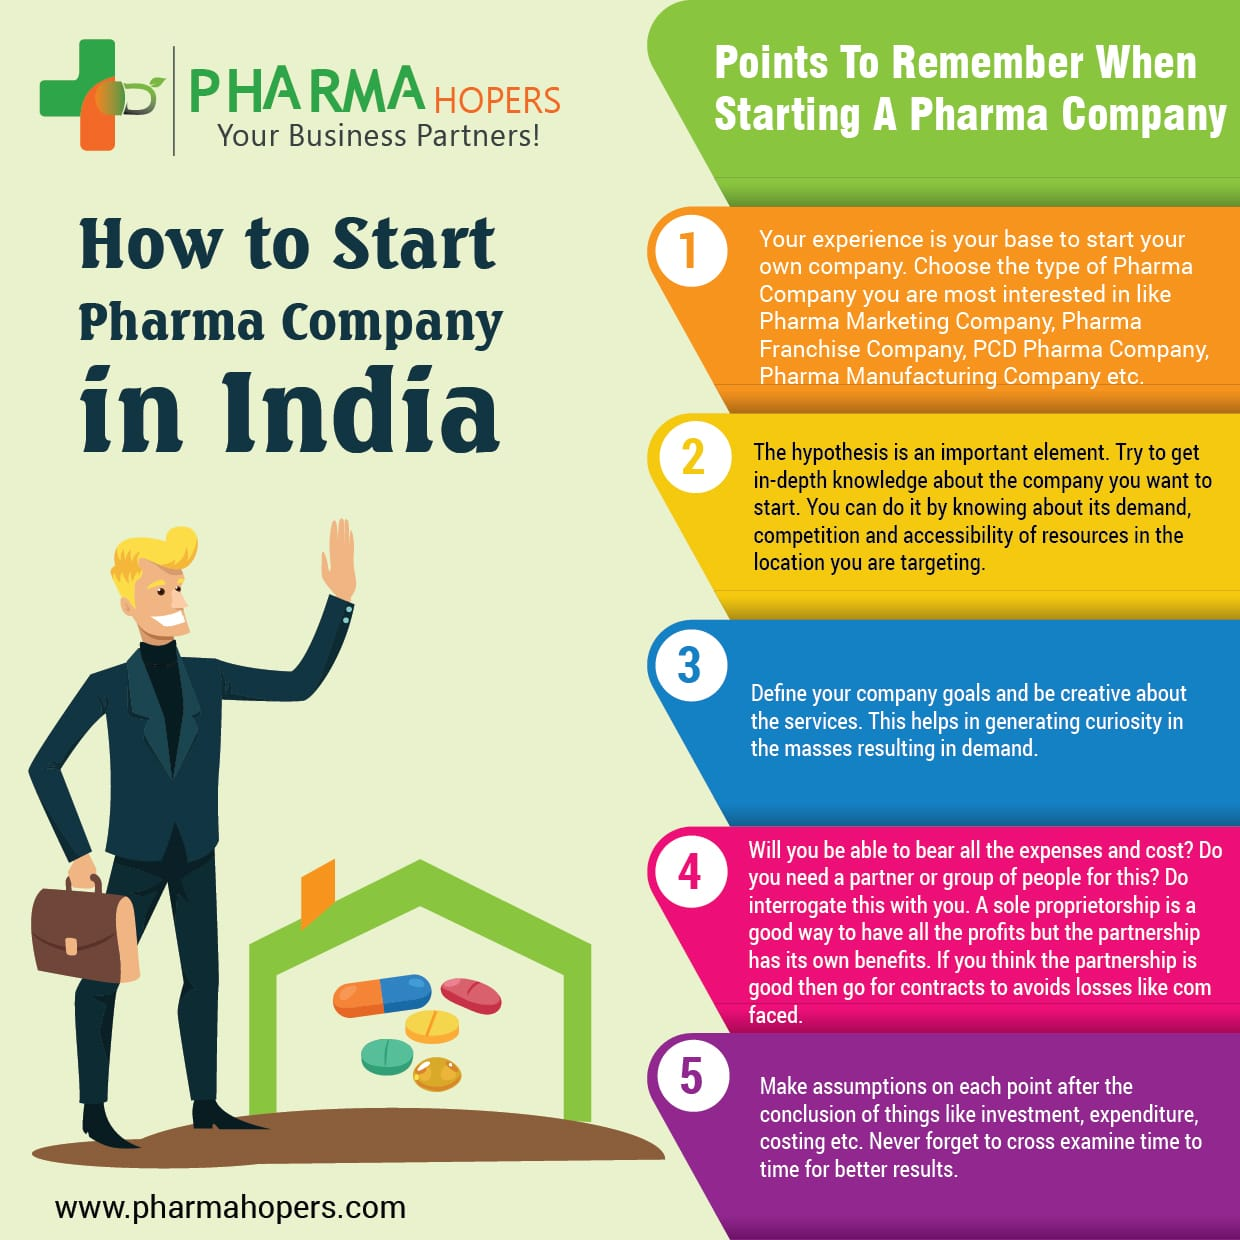 How to Start a Pharma Company in India | Best Tips For